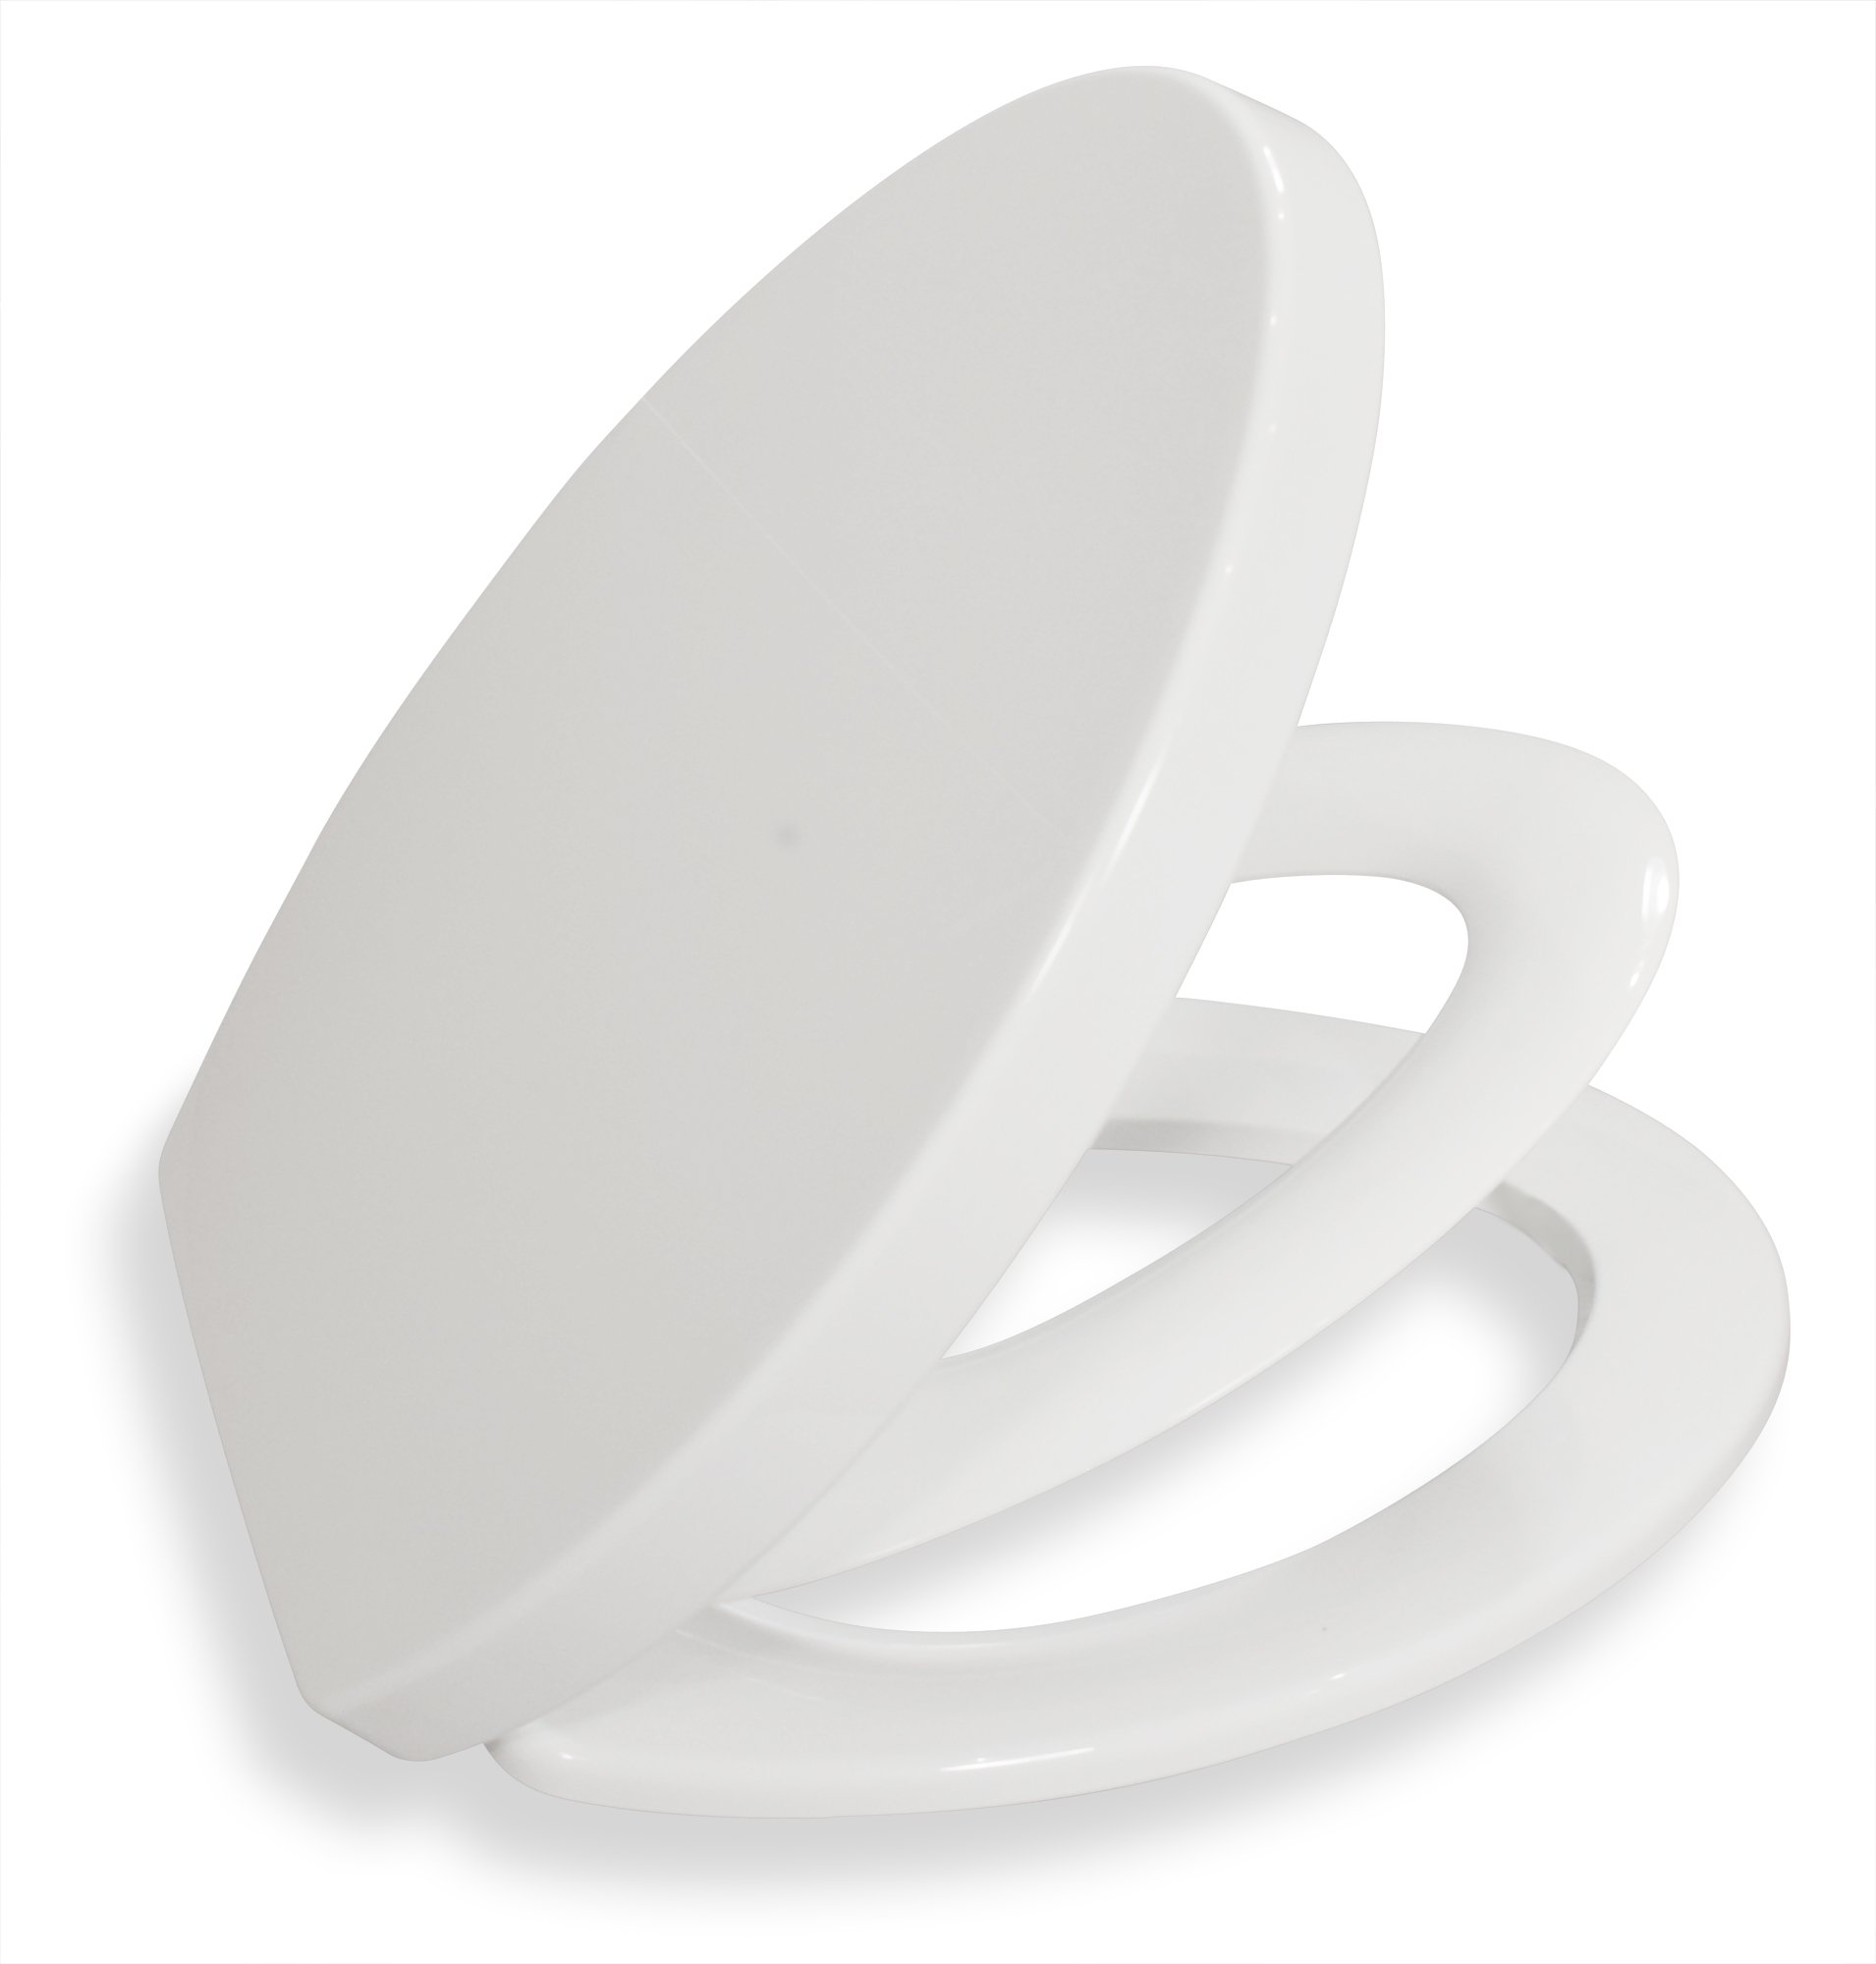 Bath Royale Premium Elongated Family Toilet Seat with Built-In Child Seat and Cover, White, Slow-Close, Quick-Release for Easy Cleaning. Fits All Elongated Toilets by Bath Royale